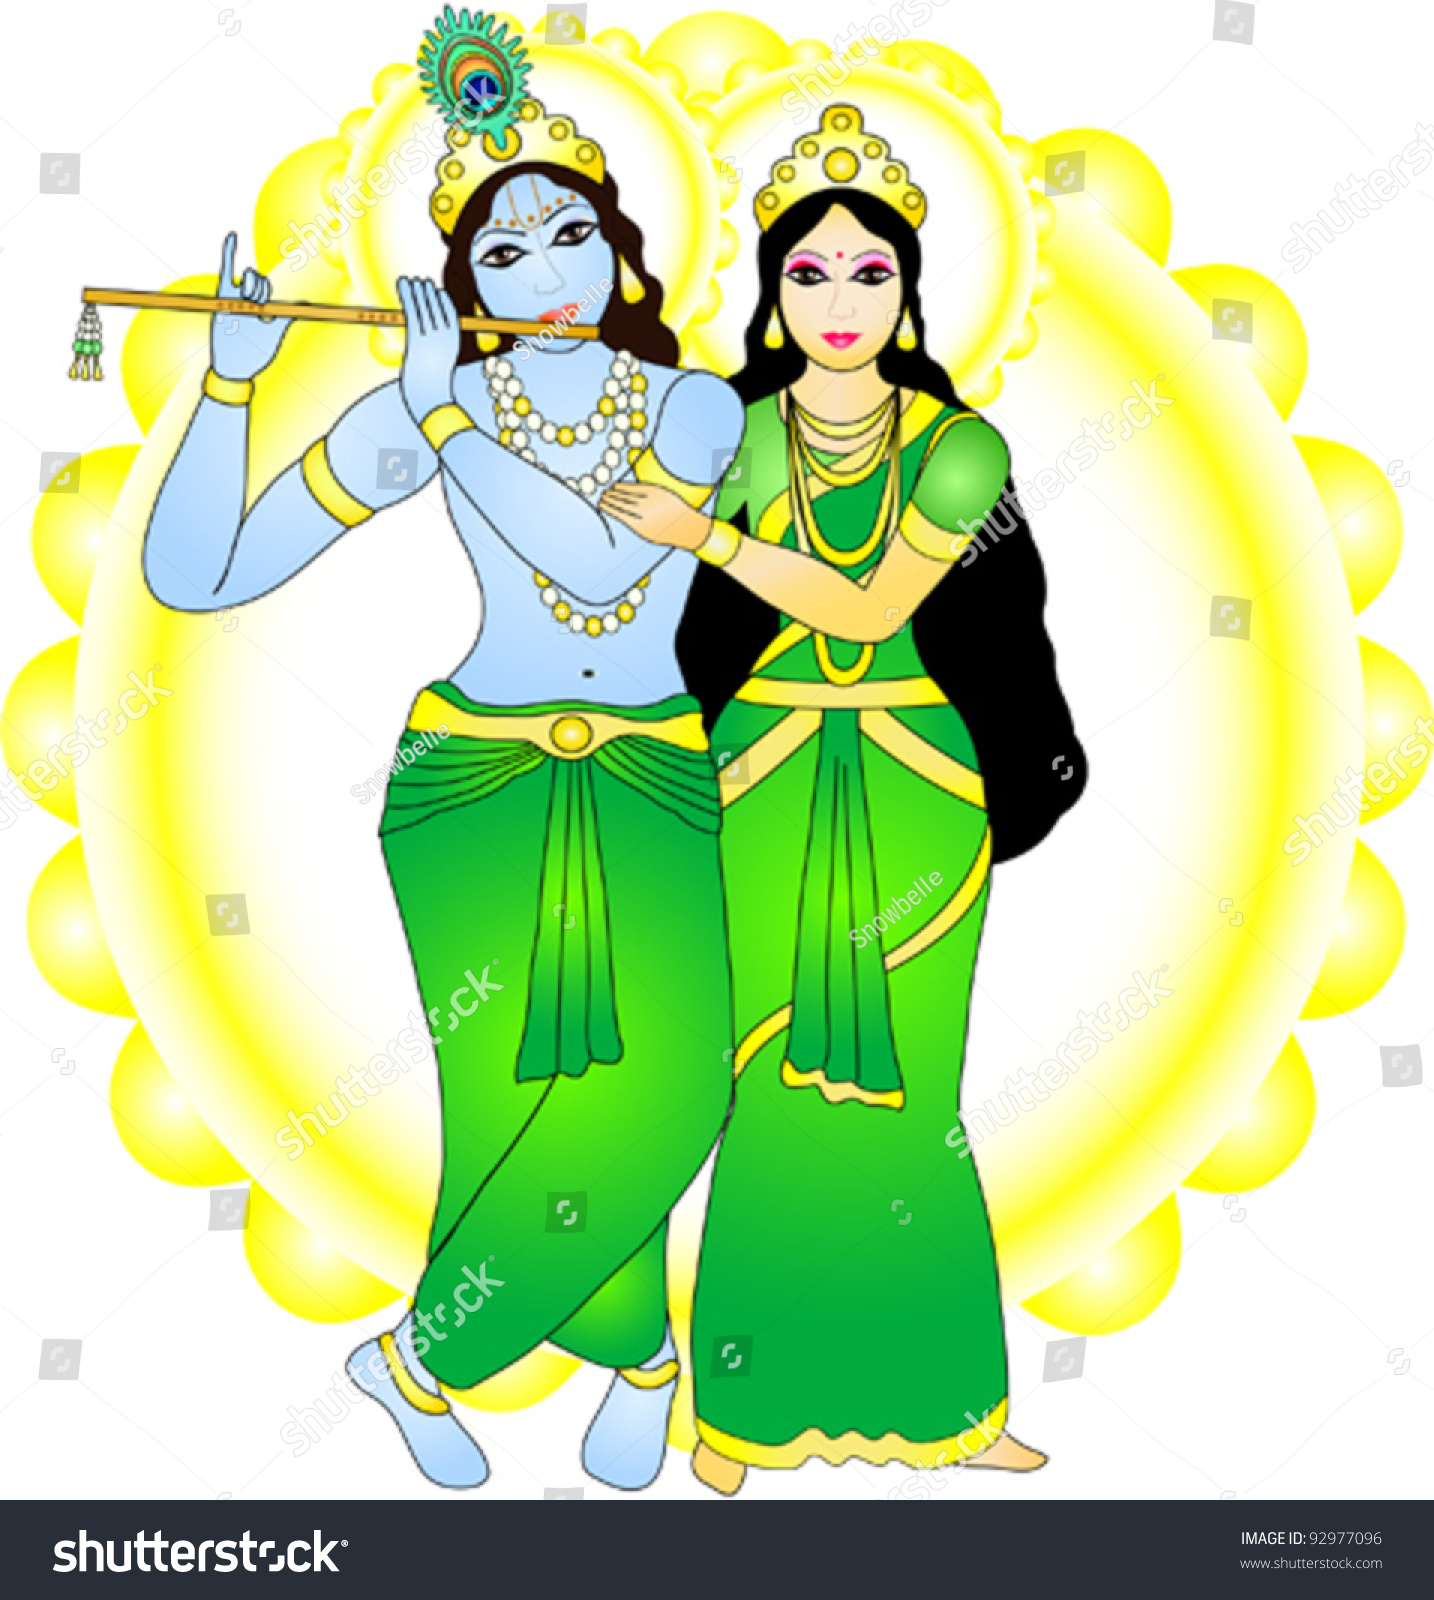 New Radha Krishna Wall Decor Decal Art Wallpapers for free download